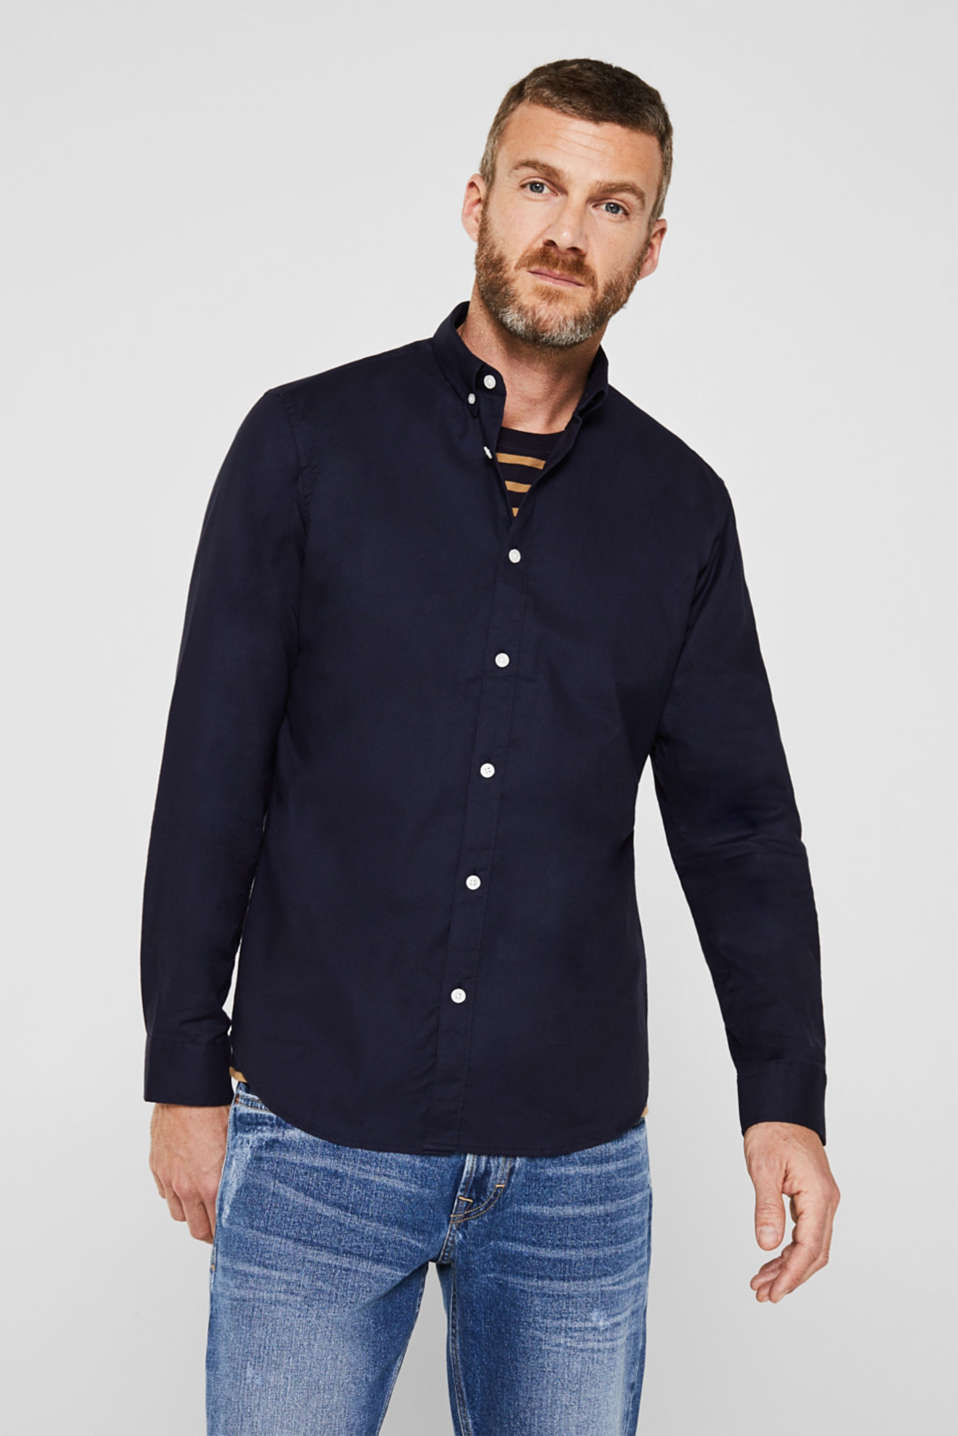 Esprit - Oxford shirt with a button-down collar